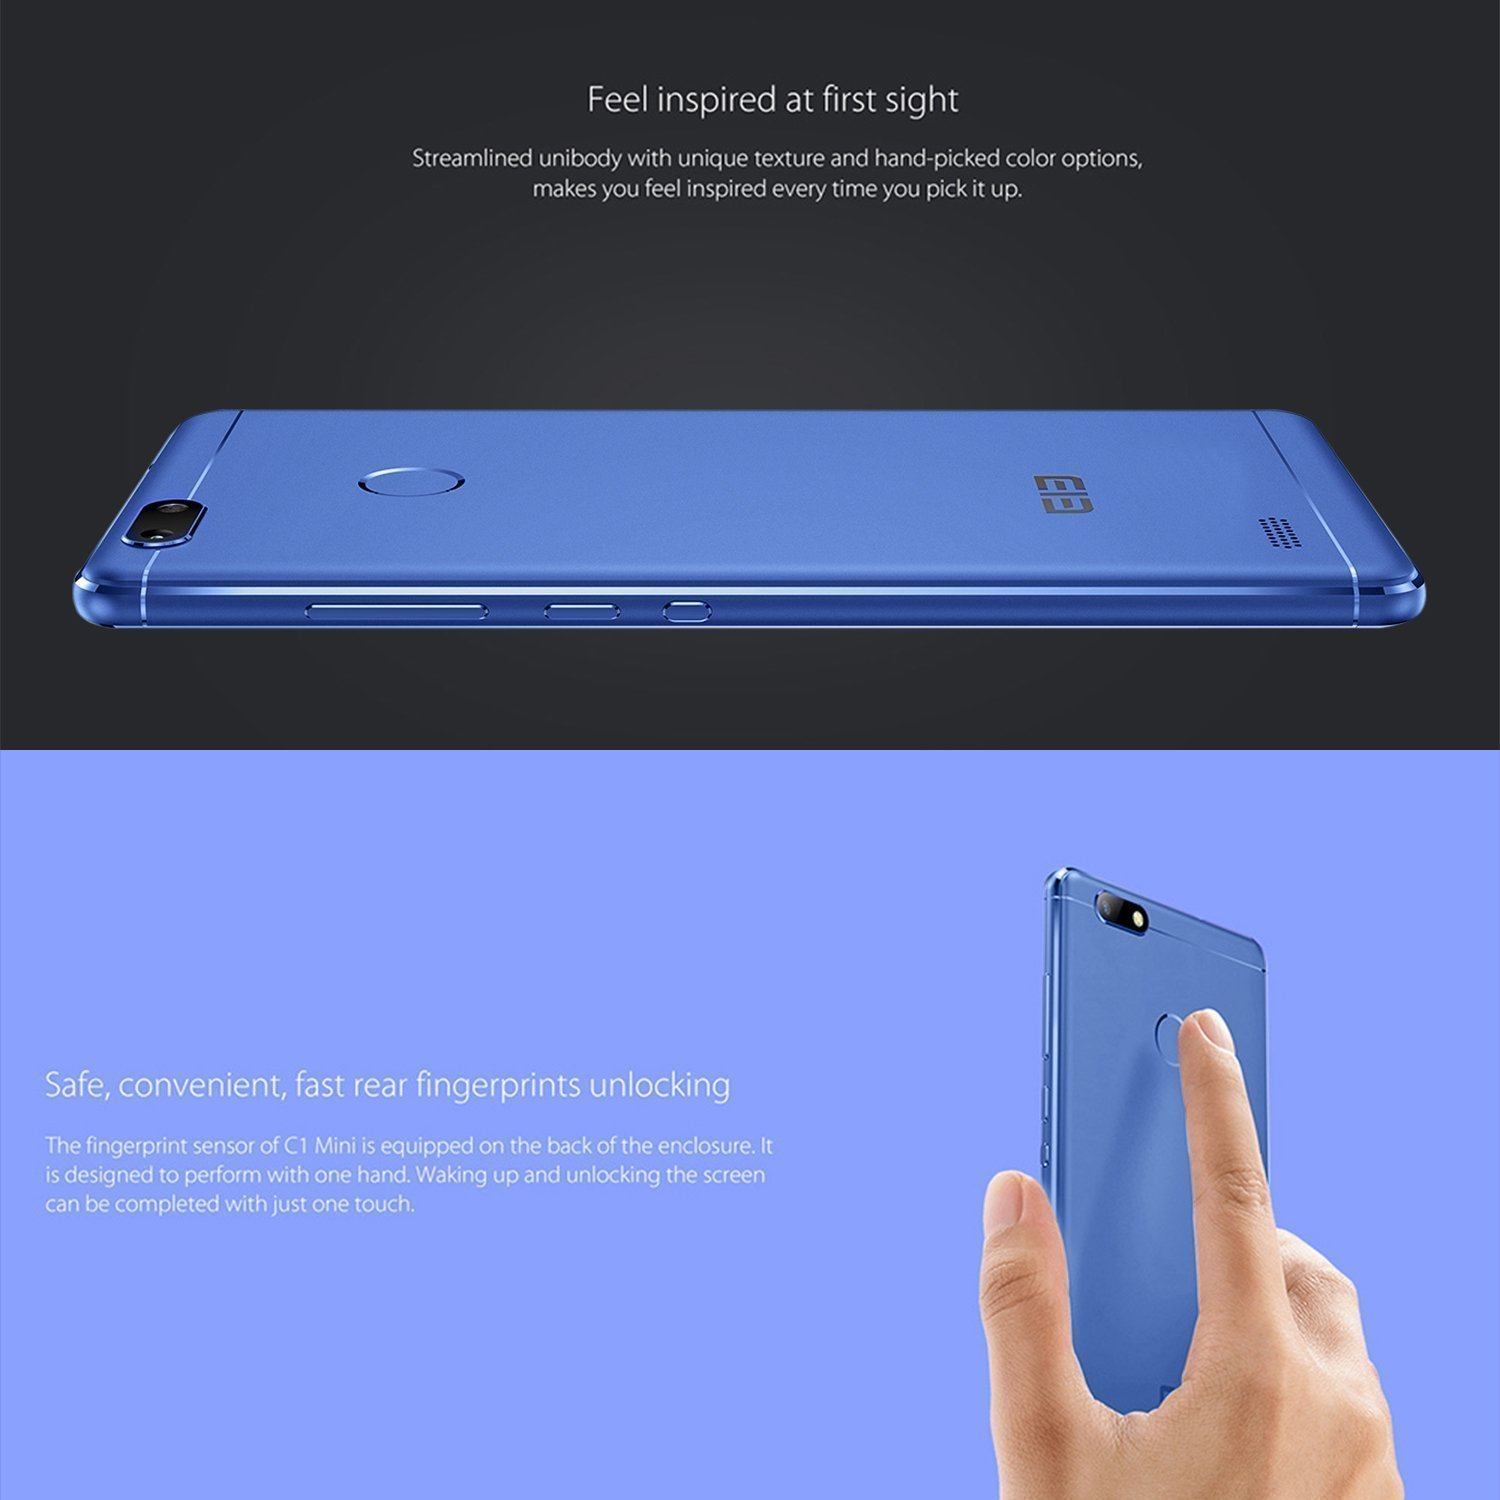 Elephone C1 Mini Migvela Smartphone Android 6.0 4G LTE Quad-Core 5 Inch 1280*720 pixel HD Mobile,1GB RAM 16GB ROM Dual Cameras Dual SIM with Fingerprint(Blue)